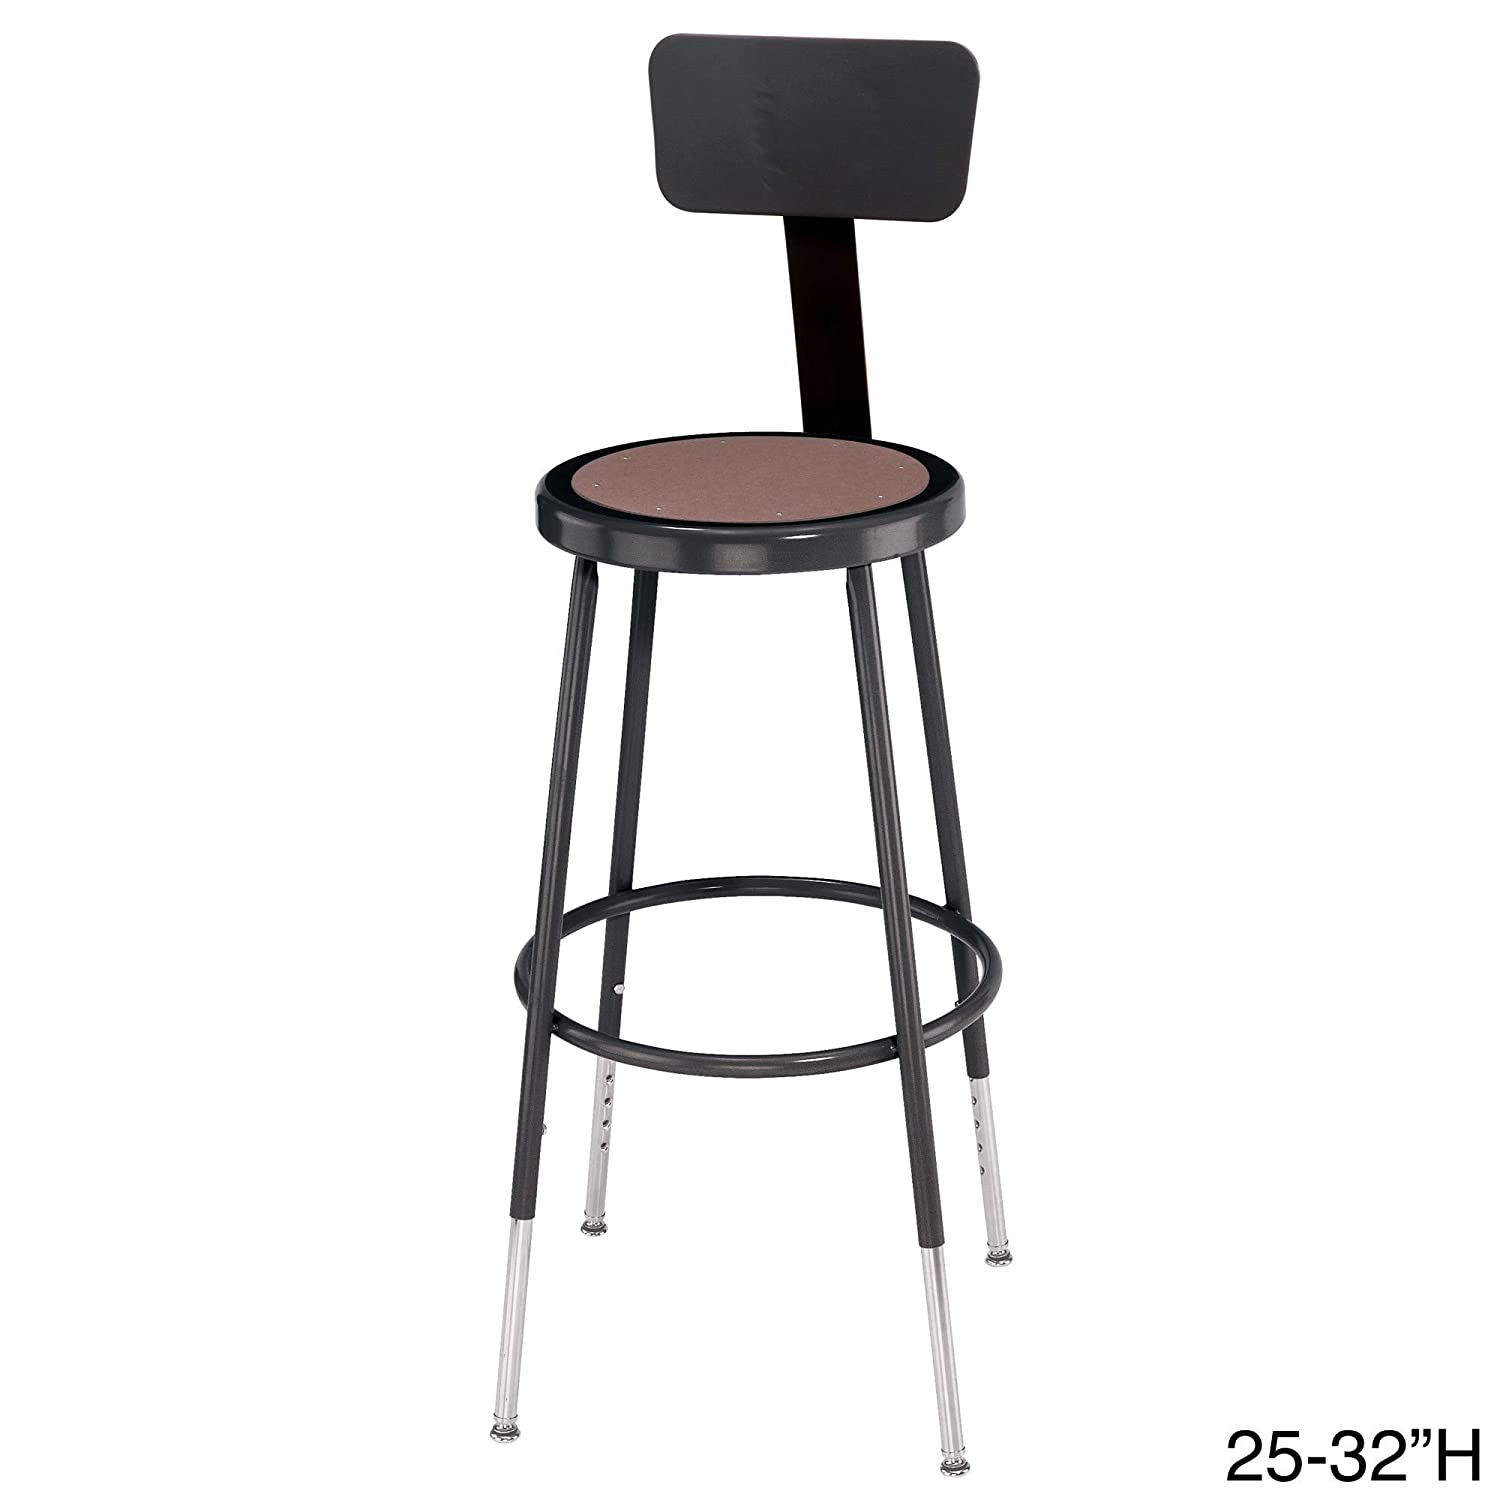 "National Public Seating 24"" Adjustable Steel Stool with Backrest, Black (6224HB-10)"